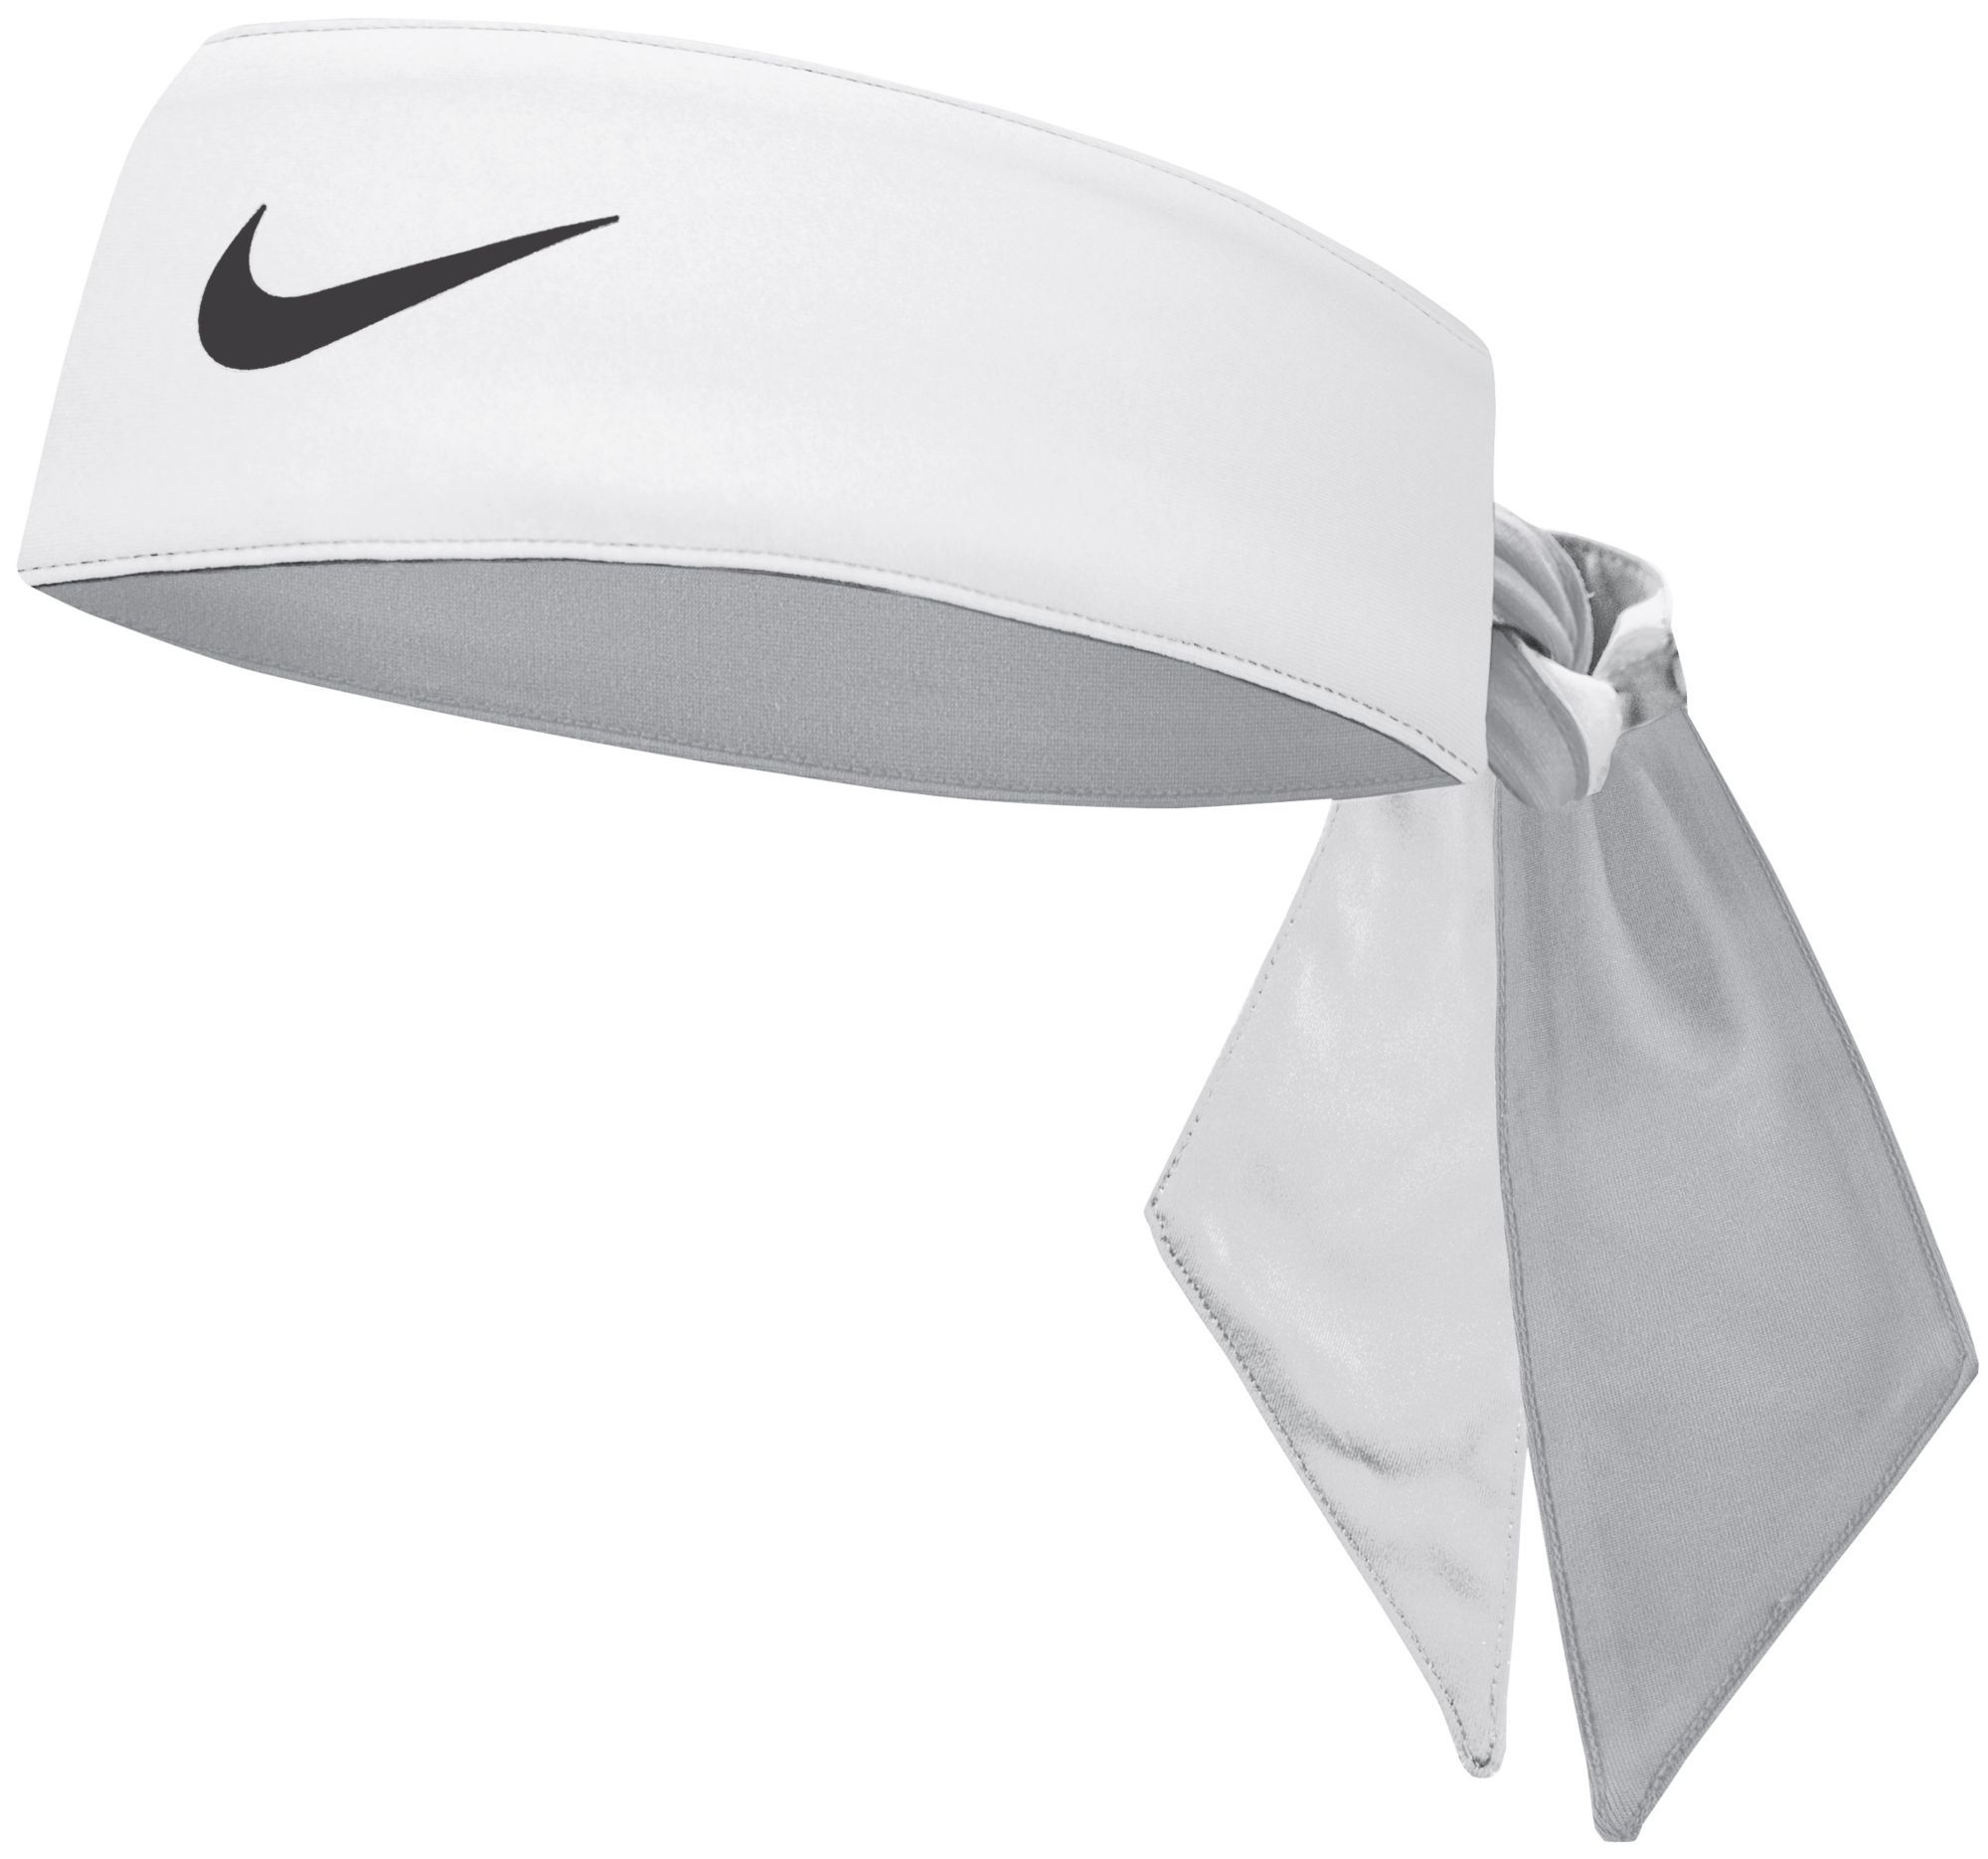 Nike Cooling Head Tie Nike Headbands Nike Tie Headbands Head Ties